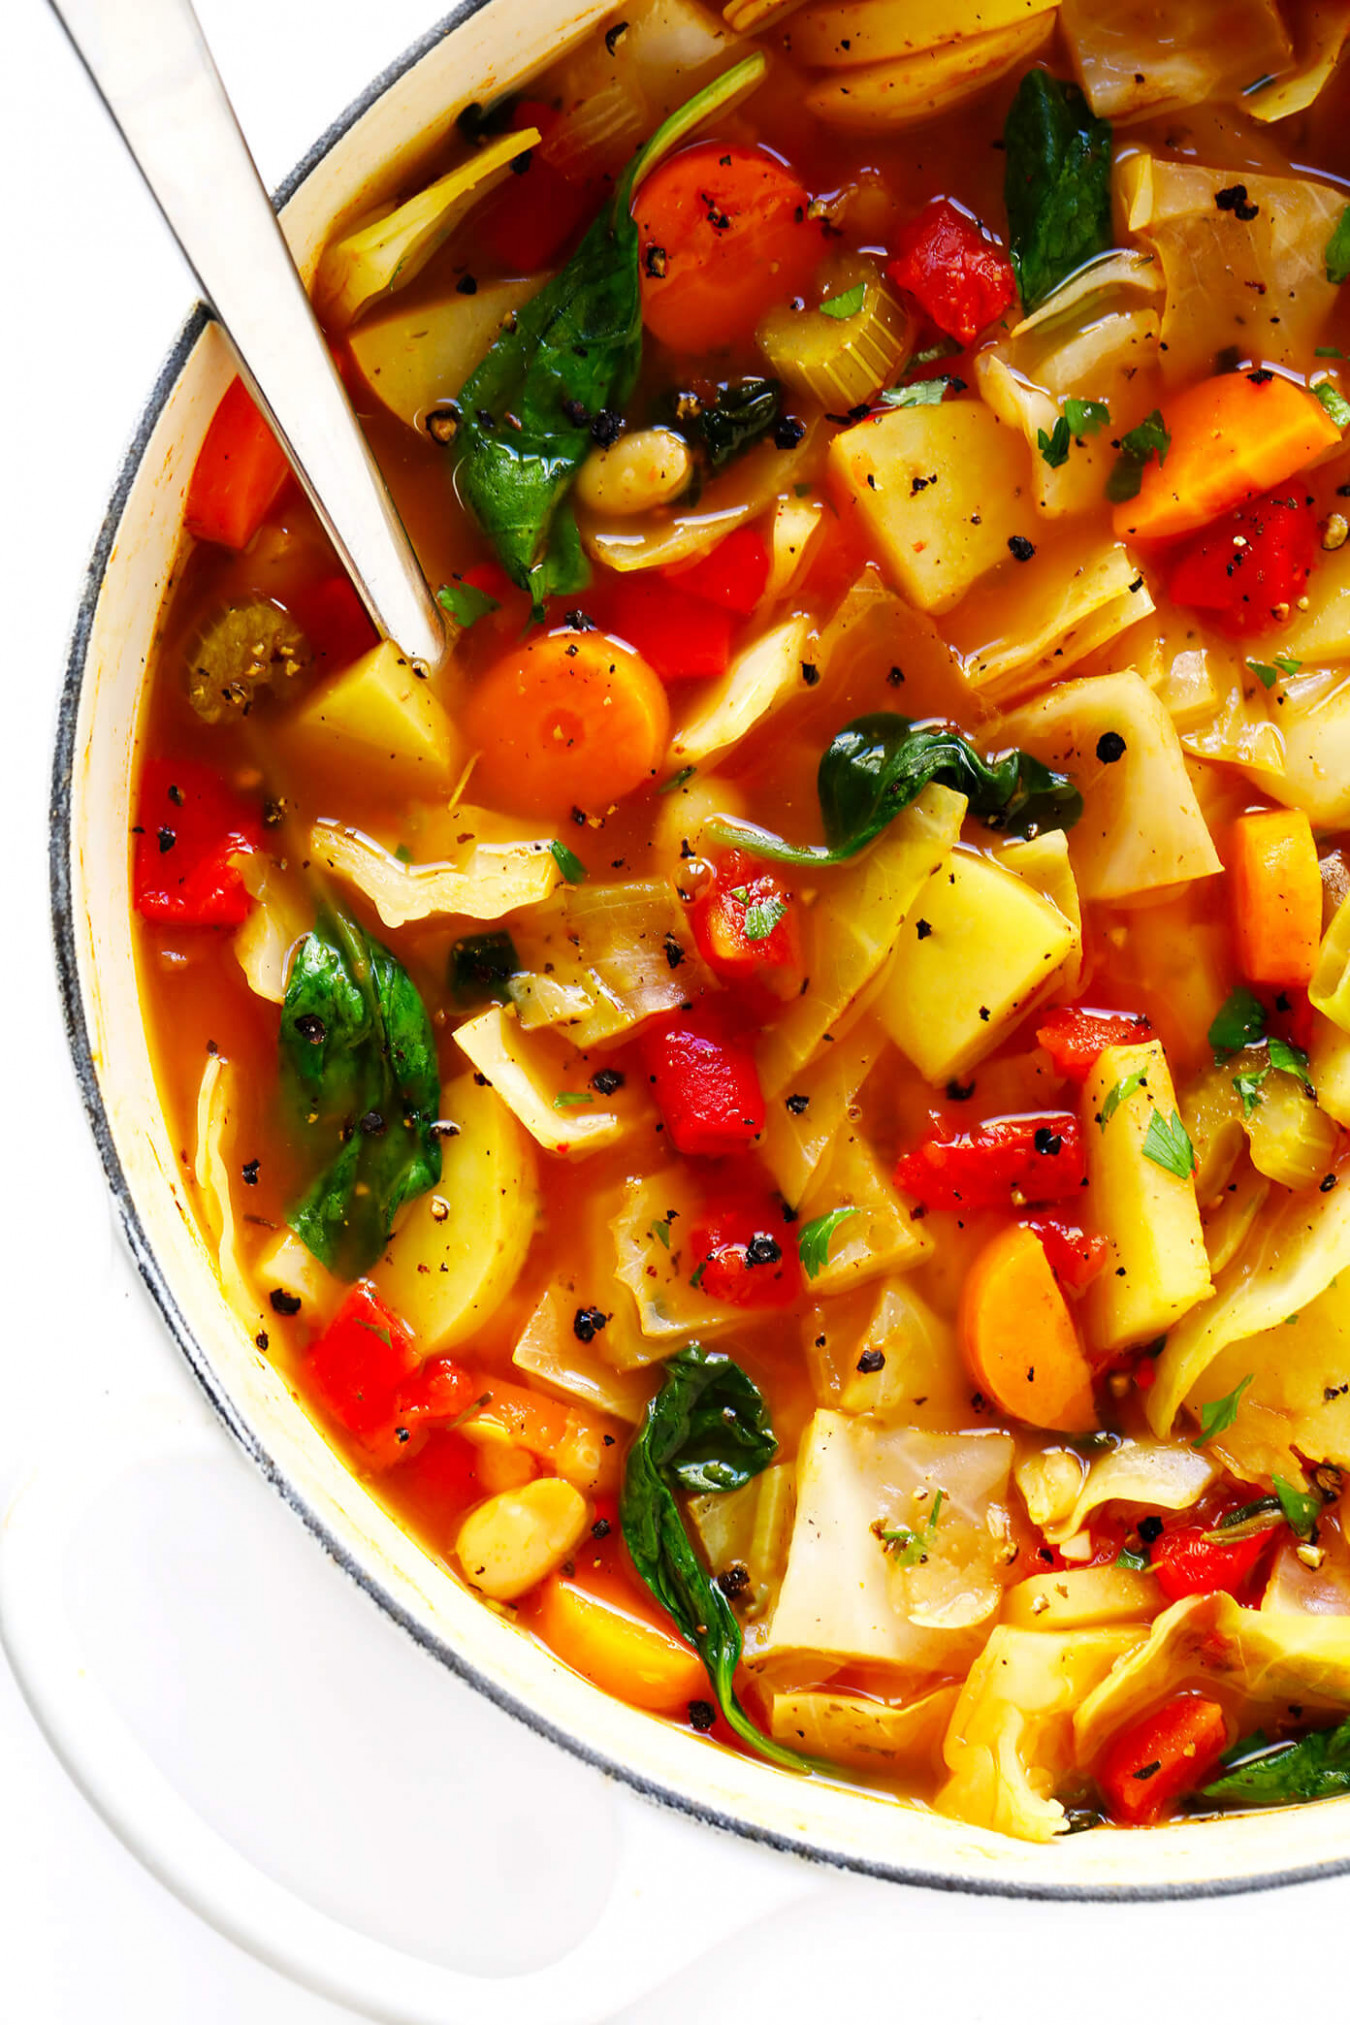 Spicy Vegetarian Cabbage Soup - recipes that can be made vegetarian